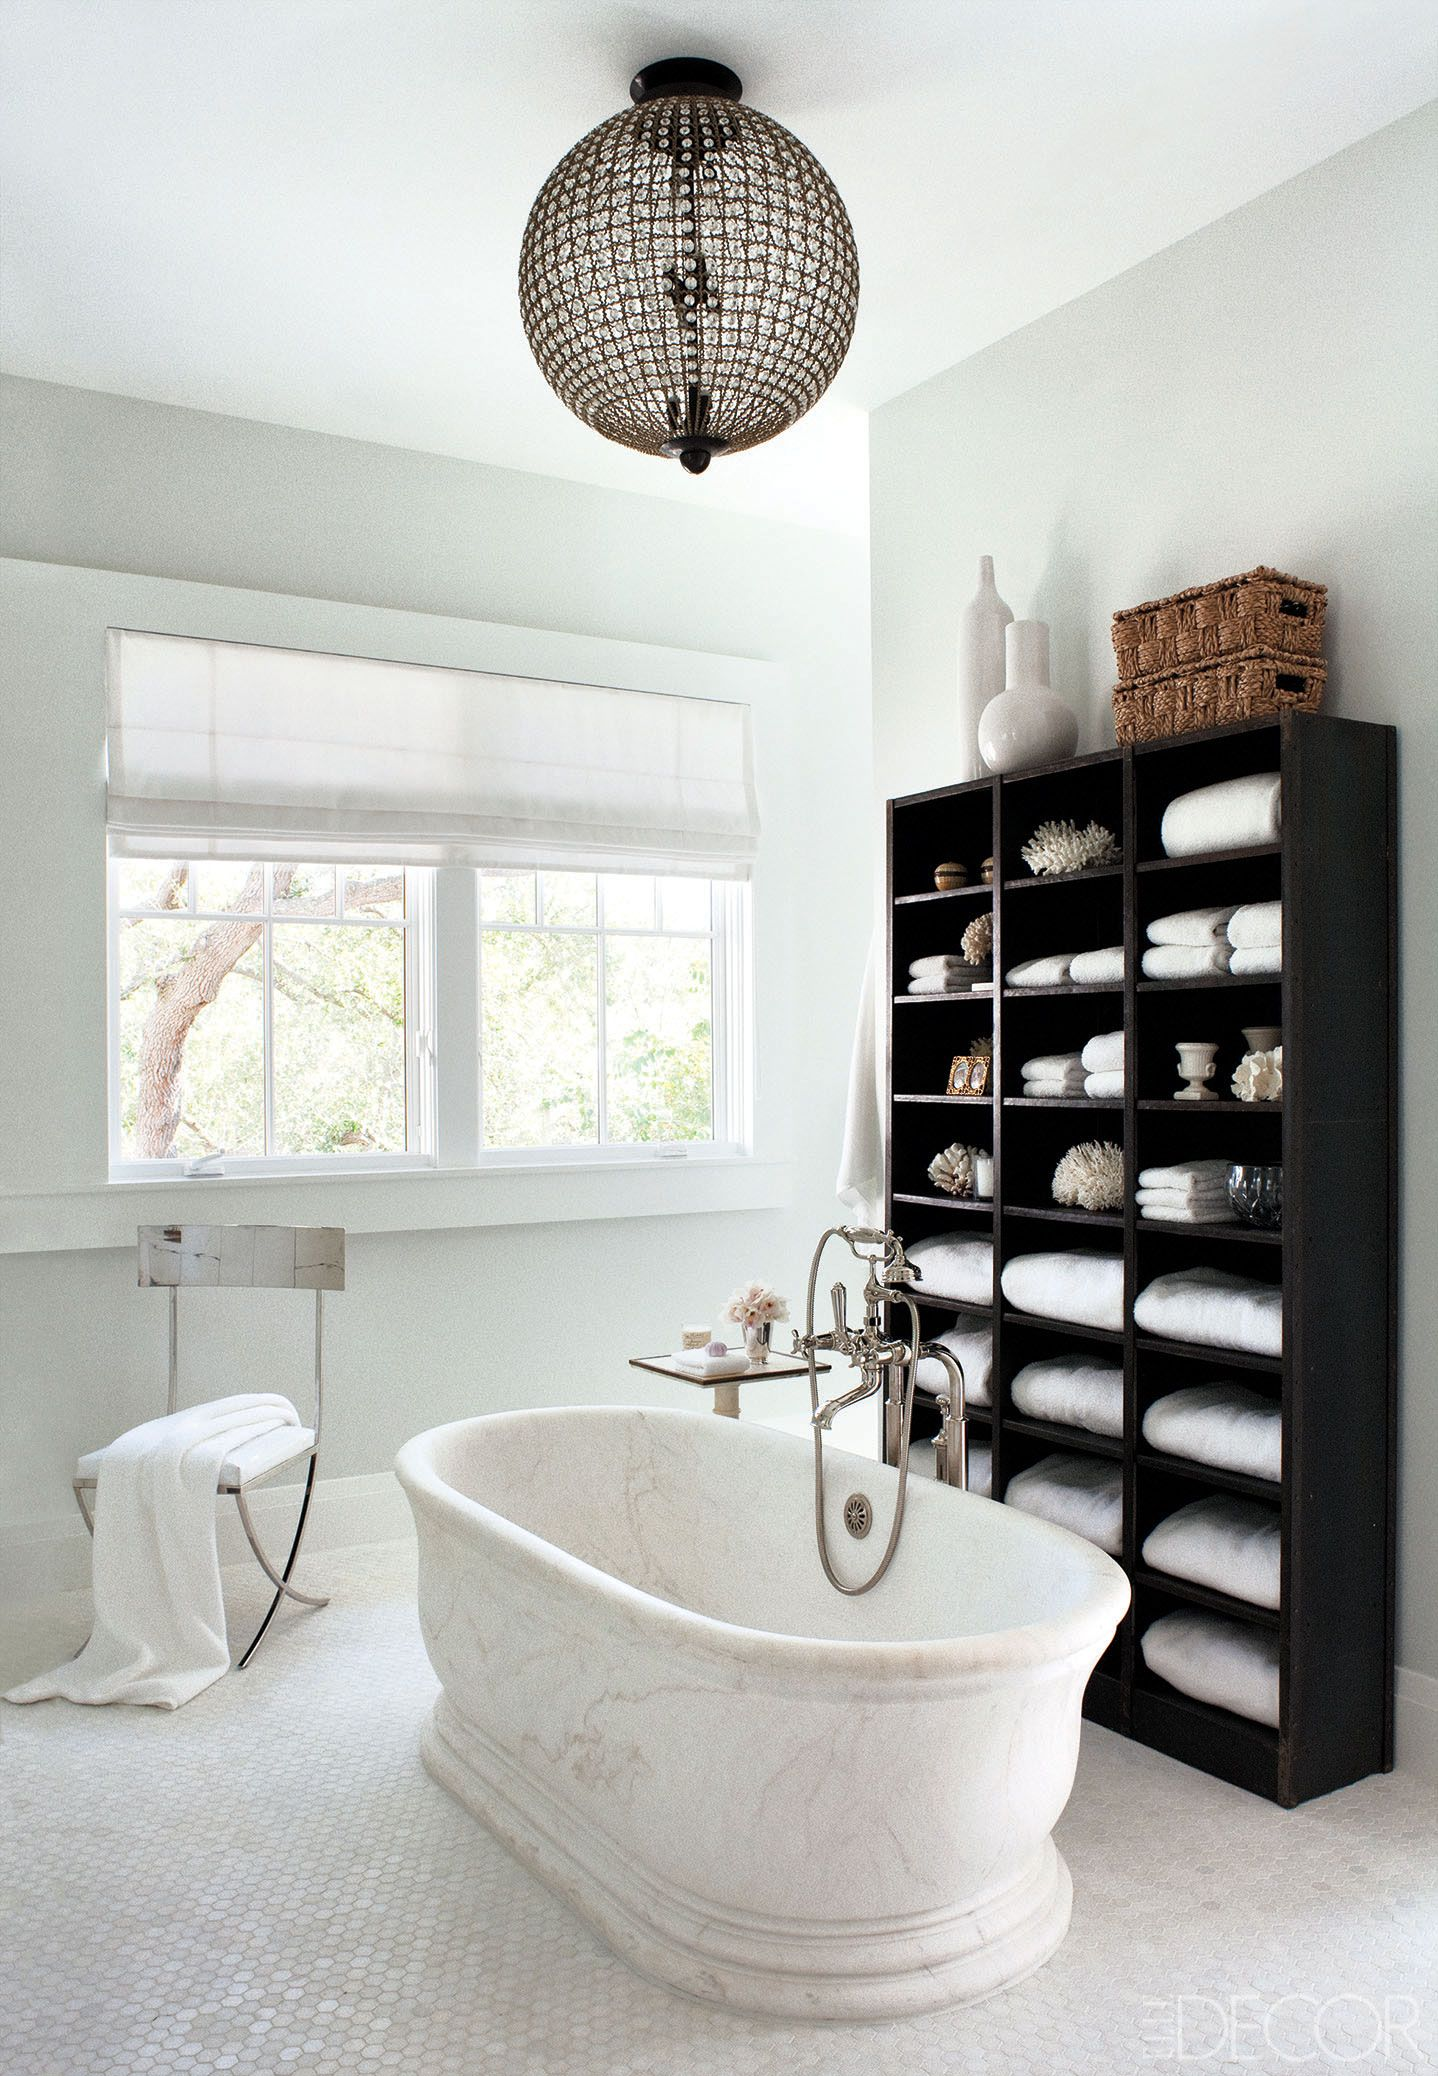 Vintage Black And White Bathroom Ideas Delectable 30 Black And White Bathroom Decor & Design Ideas Decorating Inspiration